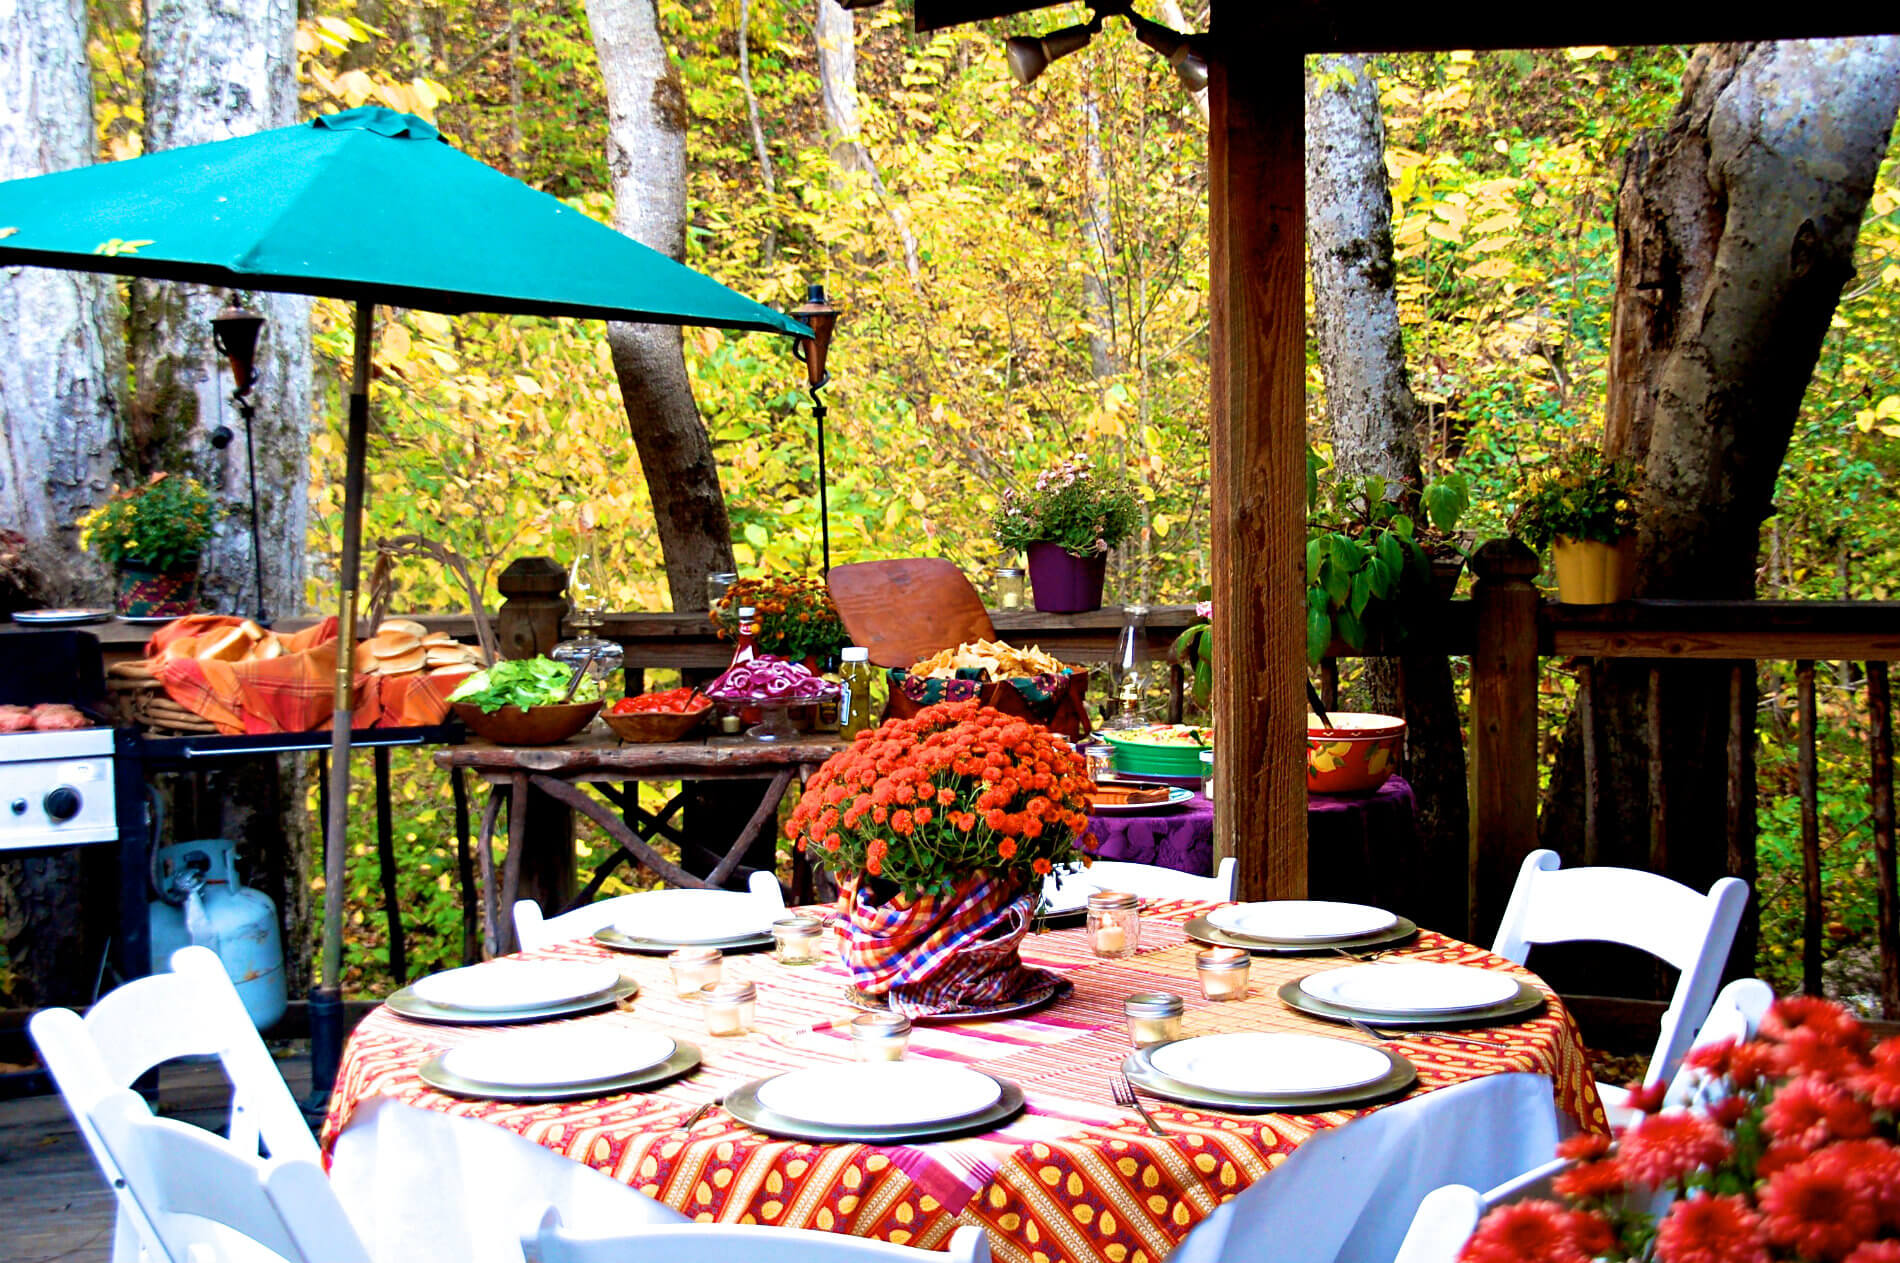 Patio outside next to woods with bright red tablescloths and turquiose umbrellas